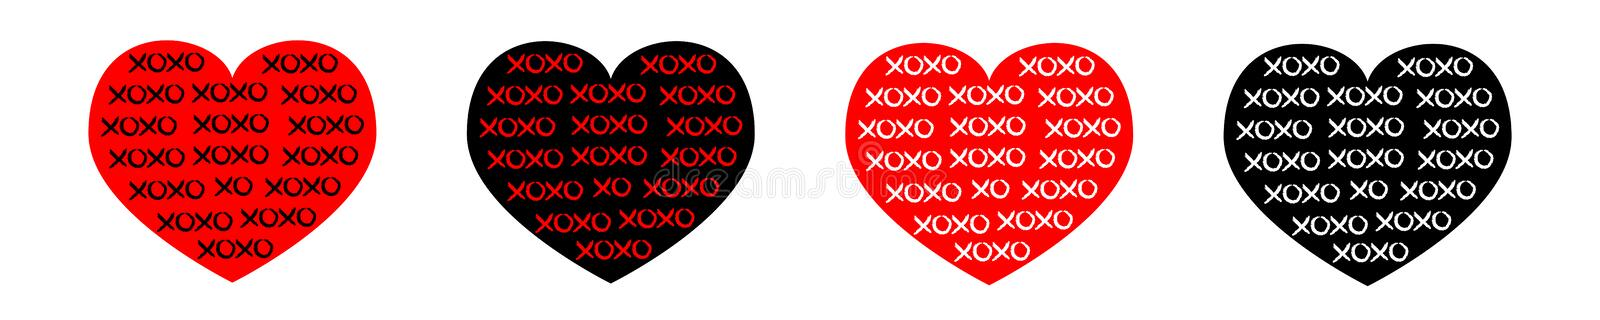 Black, red heart line icon set. Xoxo phrase sketch saying. Hugs and kisses. Happy Valentines day sign symbol. Love greeting card. Cute graphic object. Flat royalty free illustration